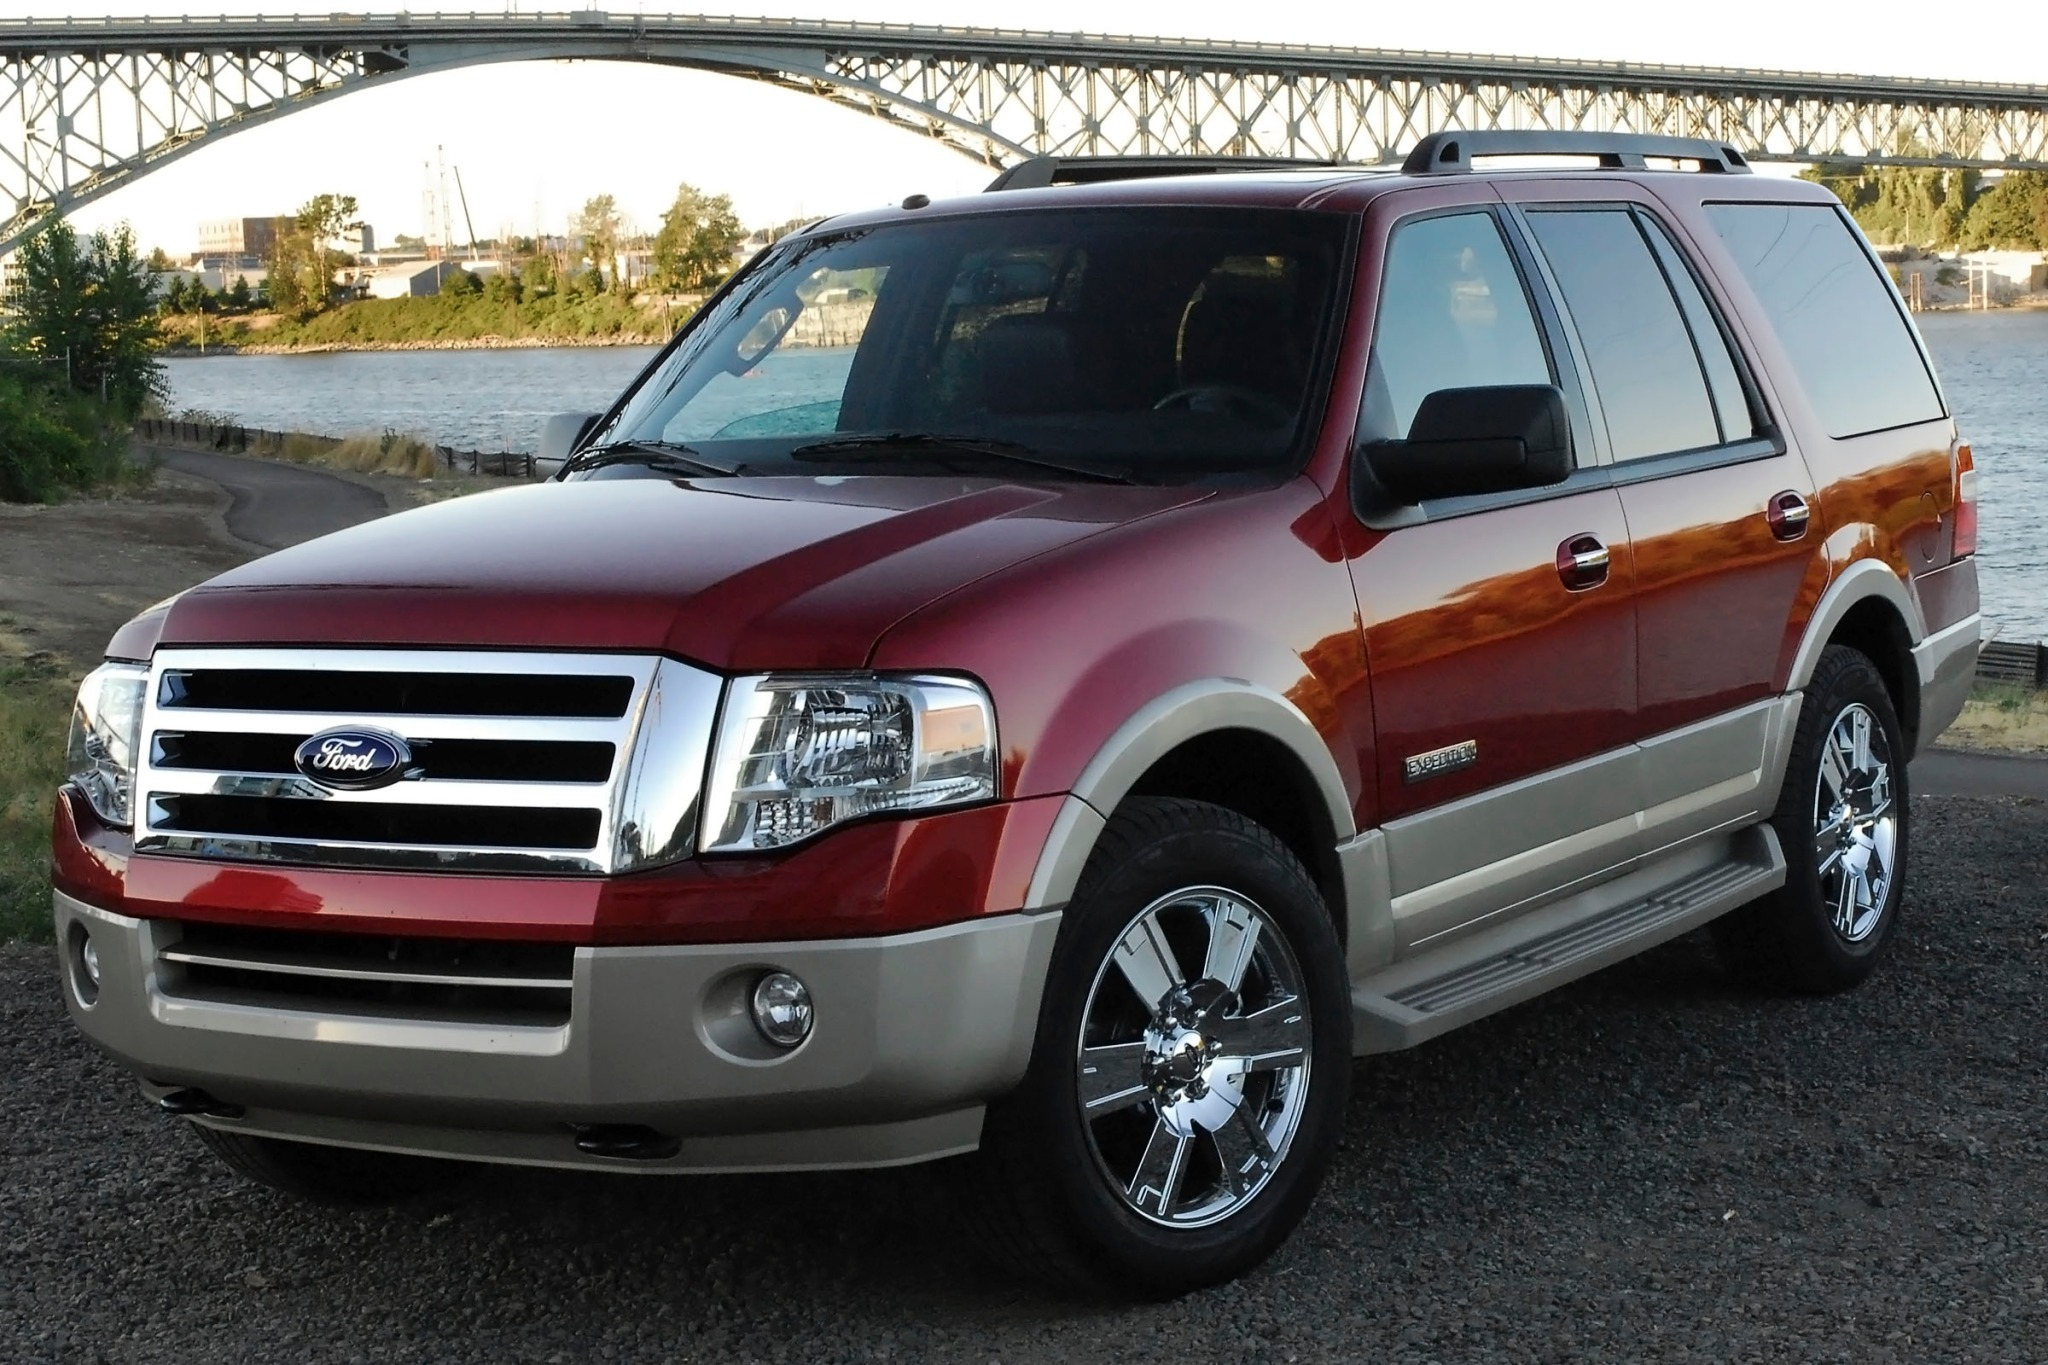 2013 Ford Expedition XLT  exterior #4